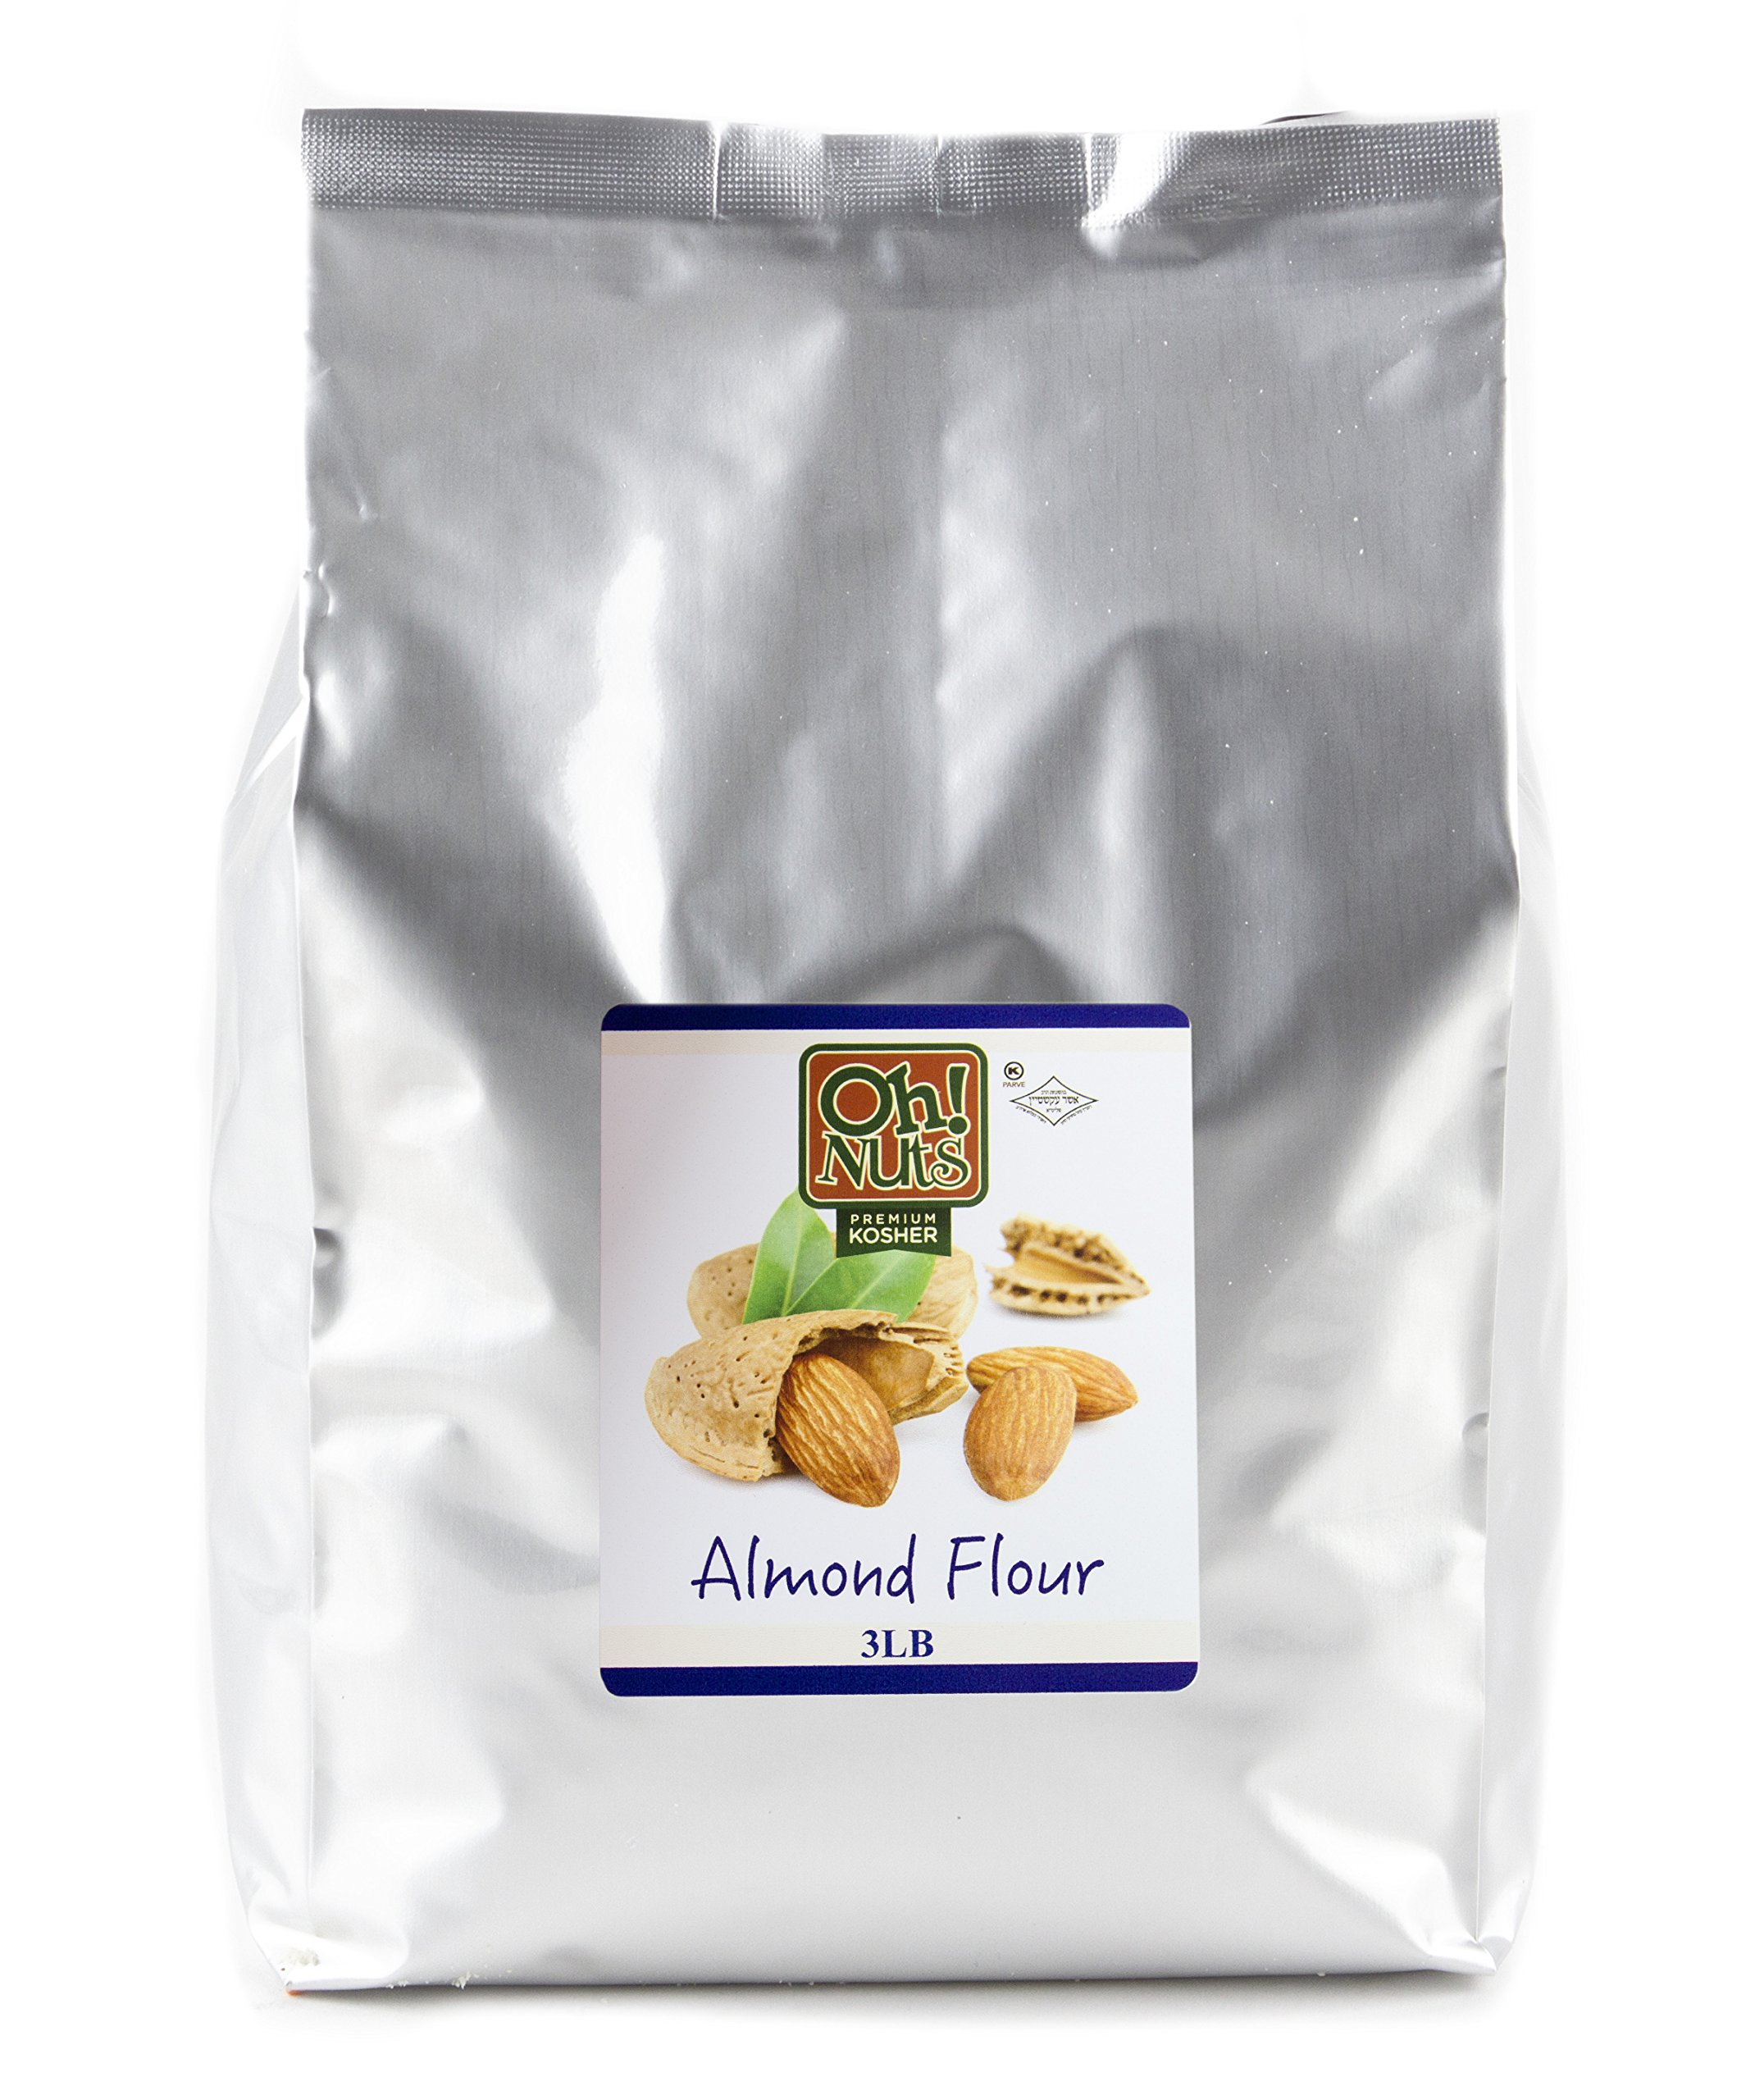 Almond Flour, UNBLANCHED Almonds Healthy Flour, Extra Fine Ground Almonds Meal - Oh! Nuts (3 LB Bag Natural Whole Almond Flour)